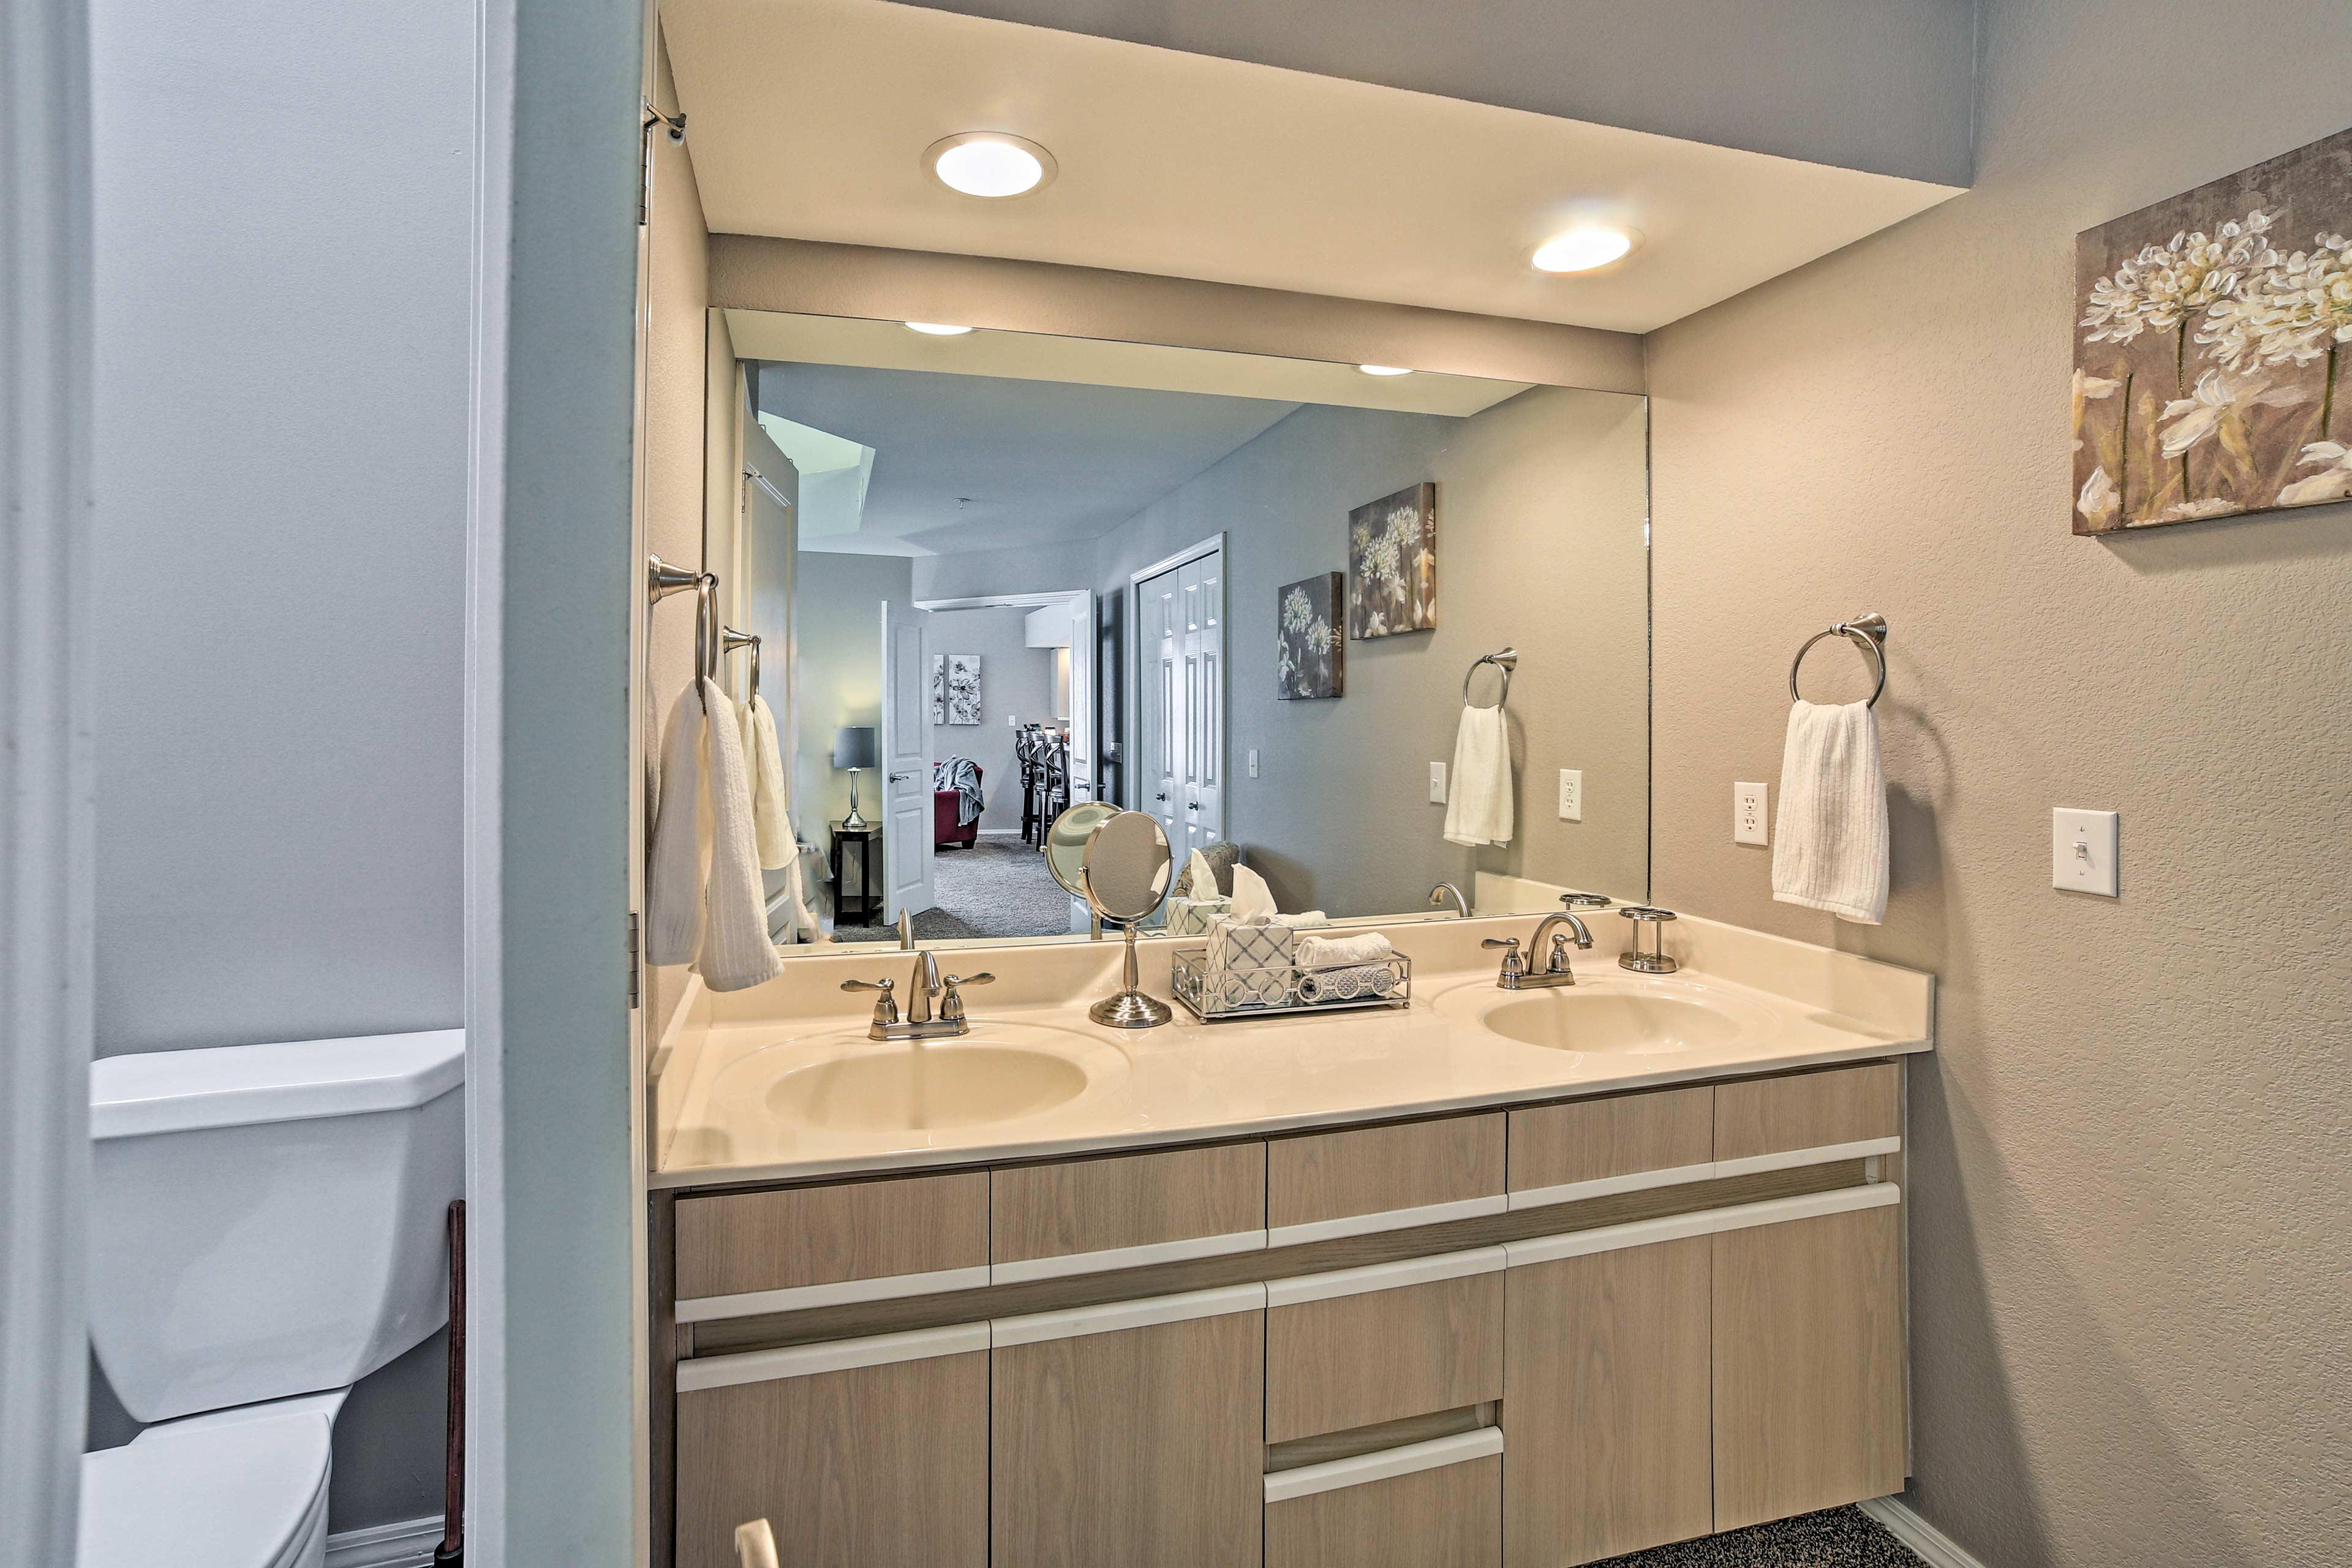 You won't have to fight over mirror space thanks to the large vanity.